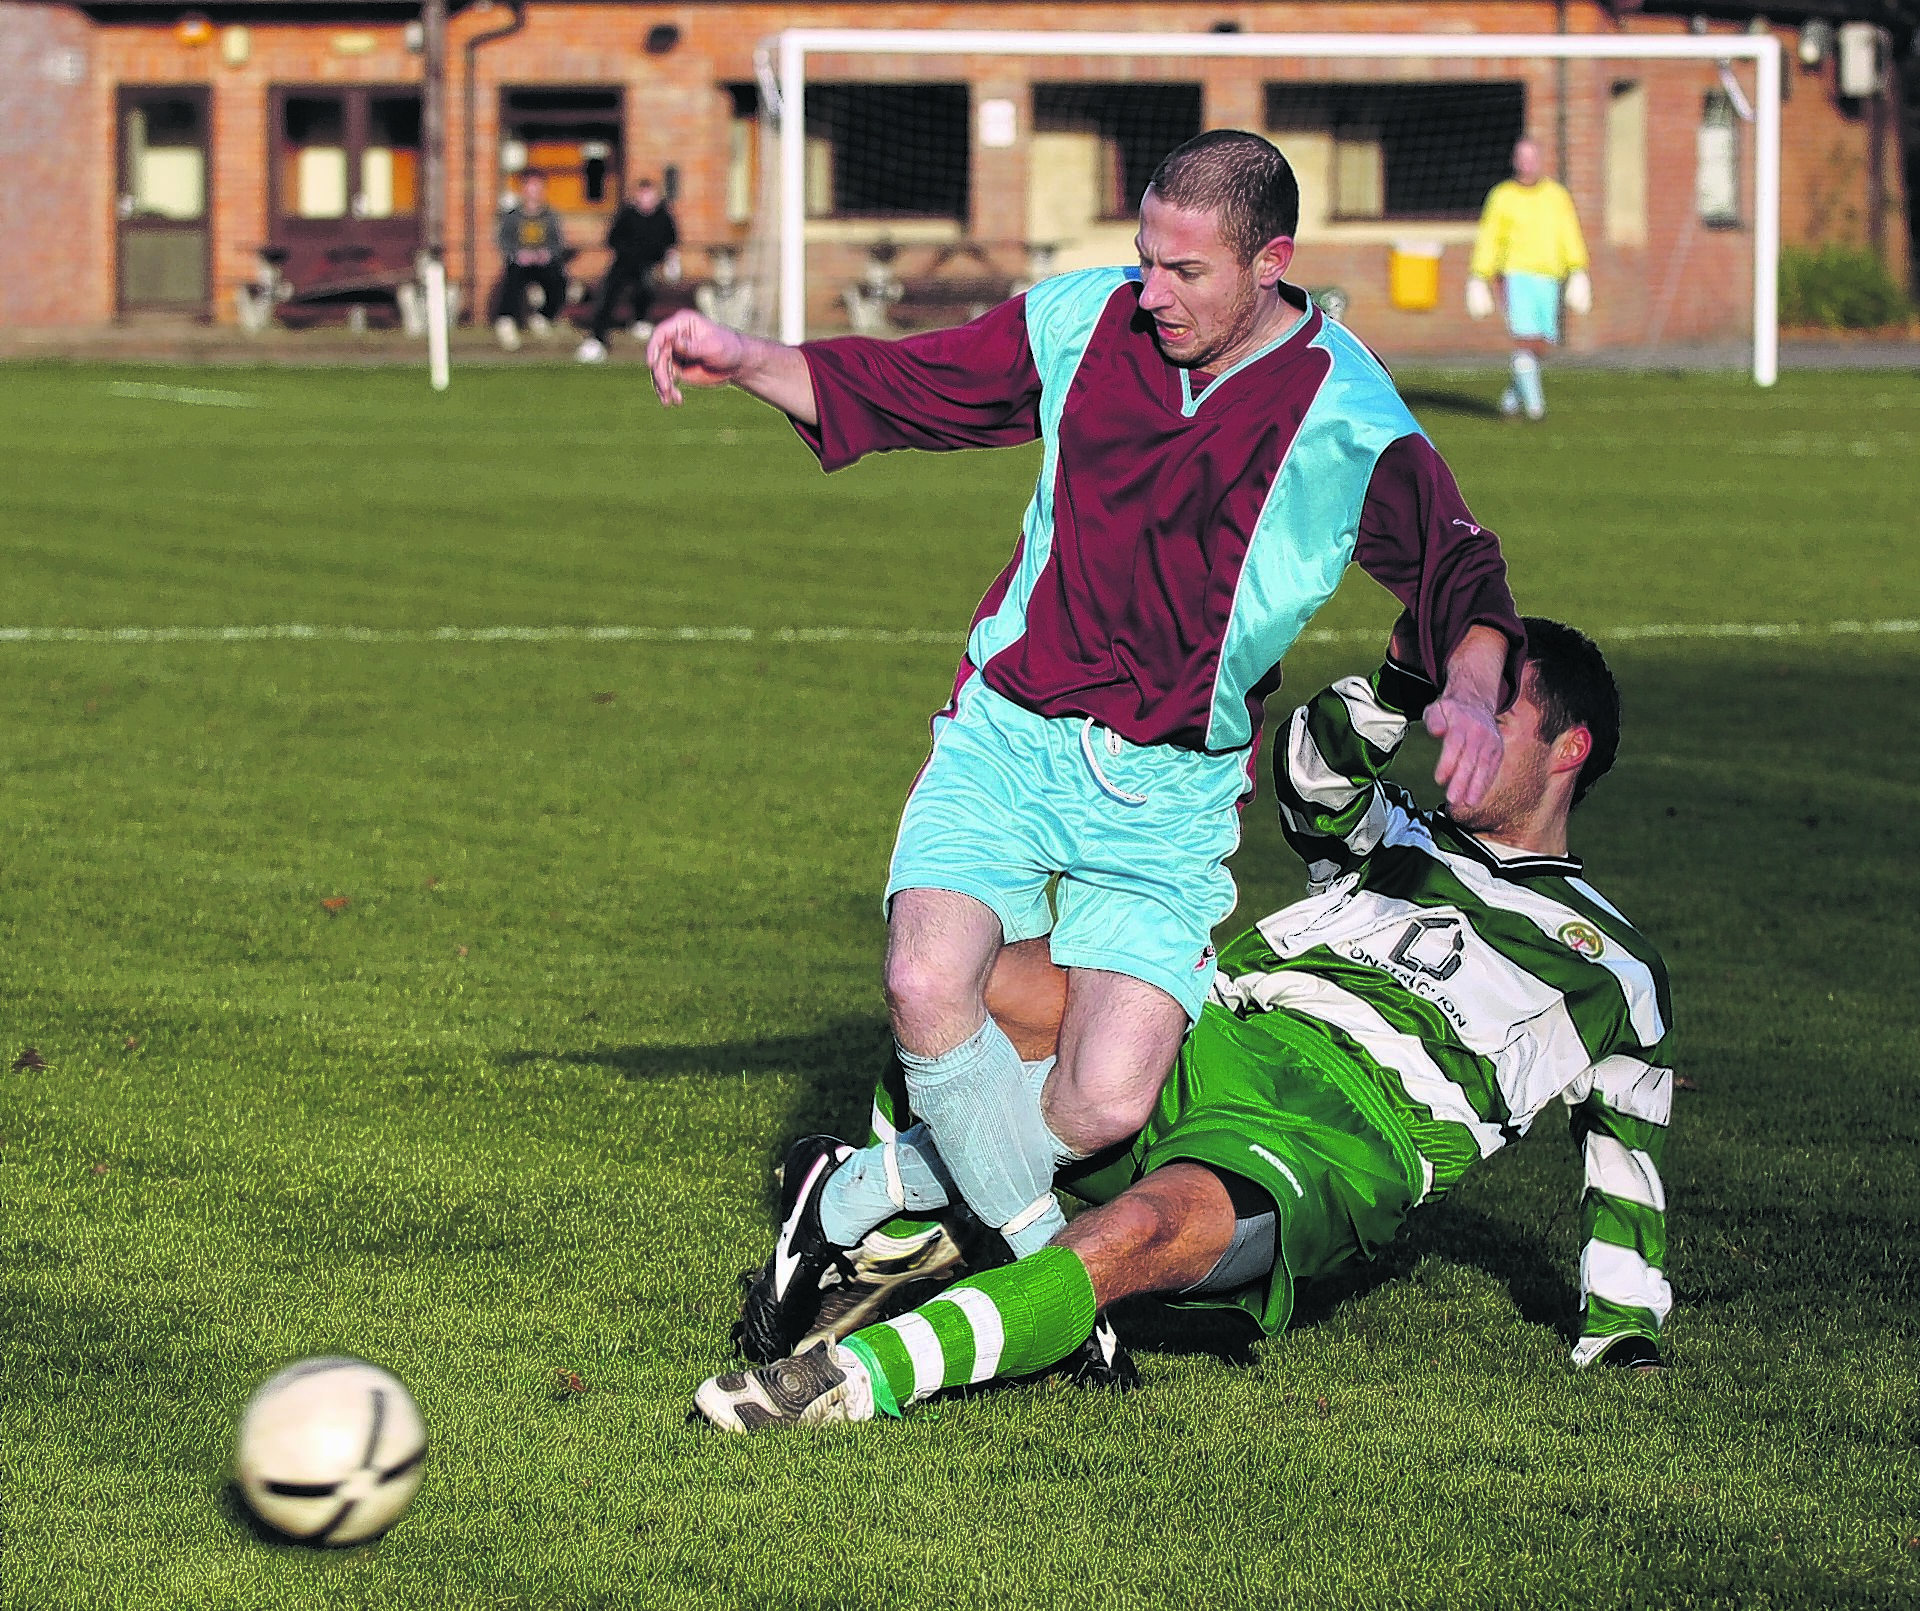 Kidlington's Jack Quainton is back for the Cup